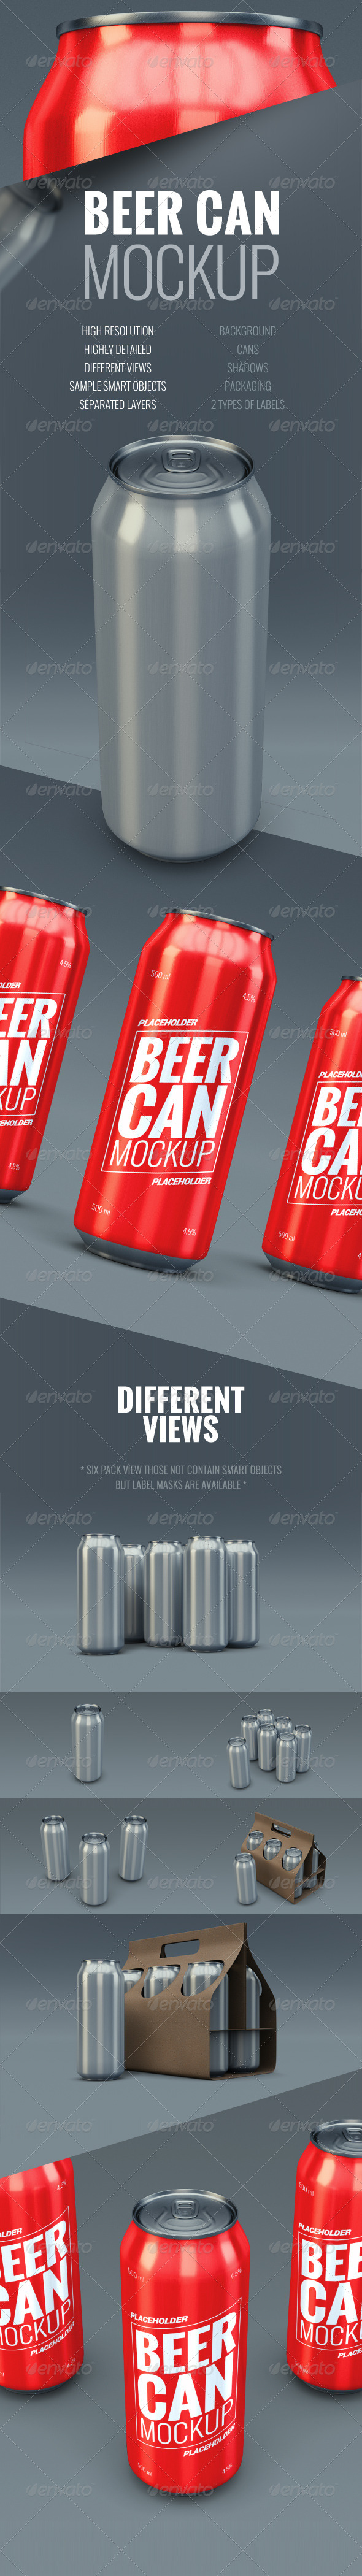 GraphicRiver Beer Can Mockup 8545825